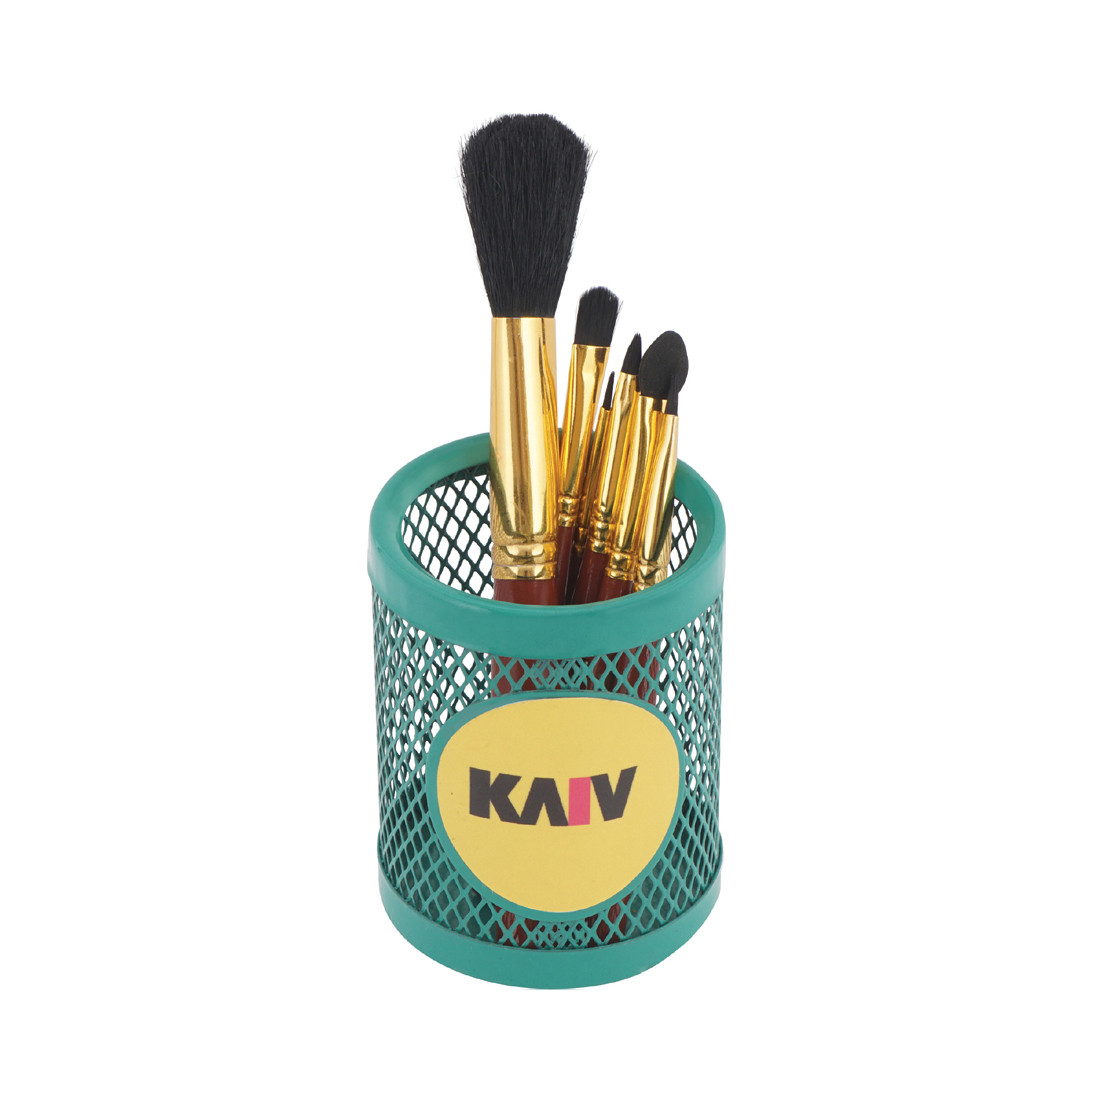 Kaiv Set of 5 Make-Up Brushes - Small (Pack of 5)